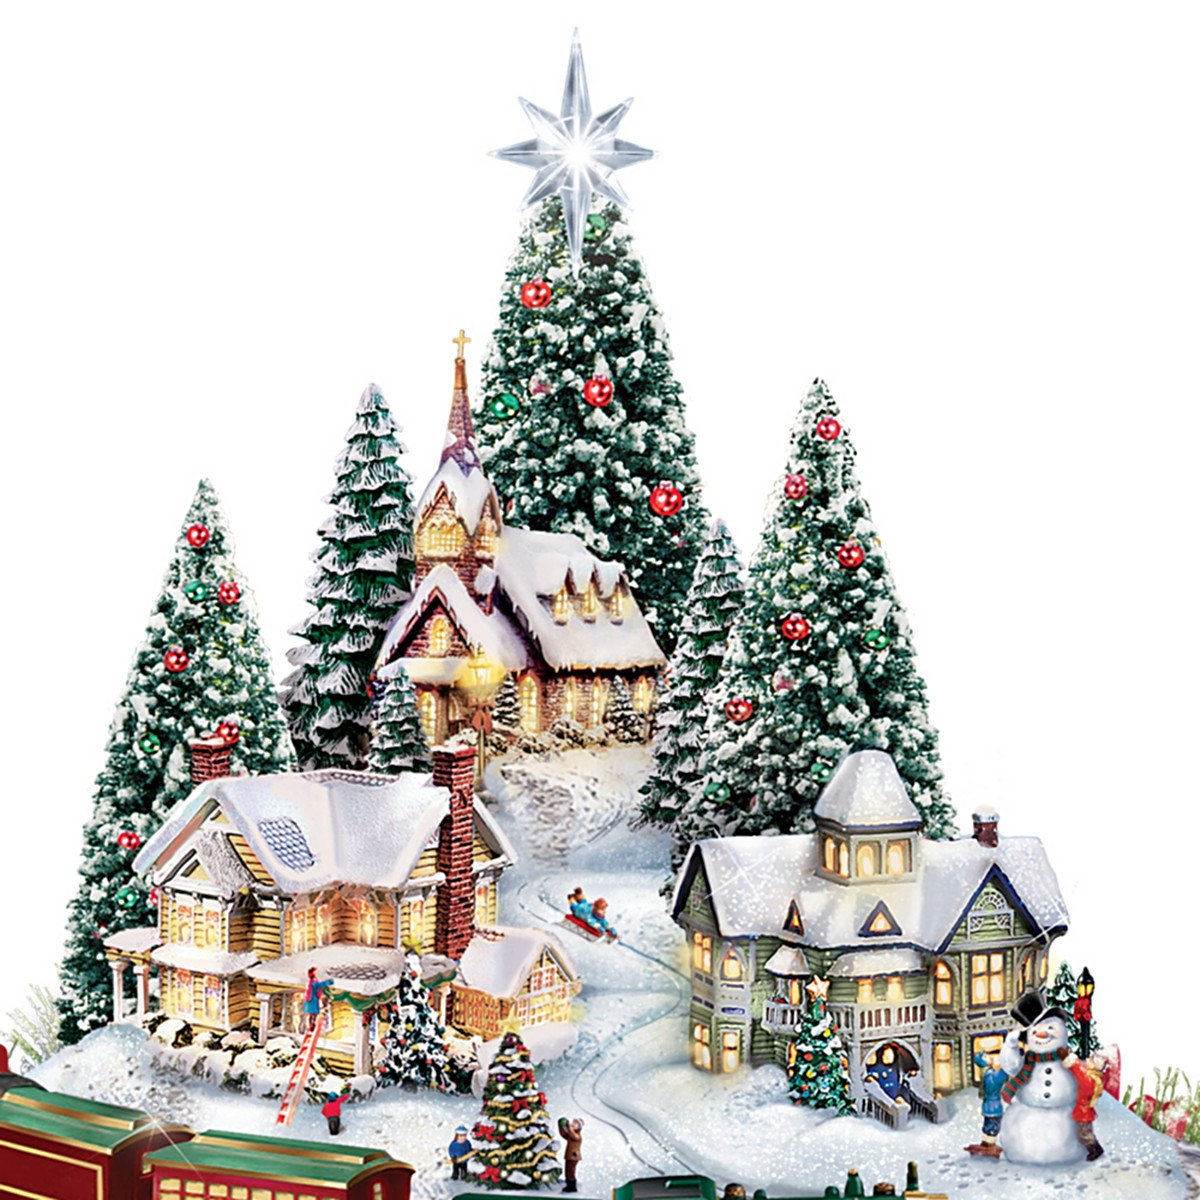 Thomas Kinkade Christmas Village Floral Centerpiece with Lights Music and Motion Close up of Houses